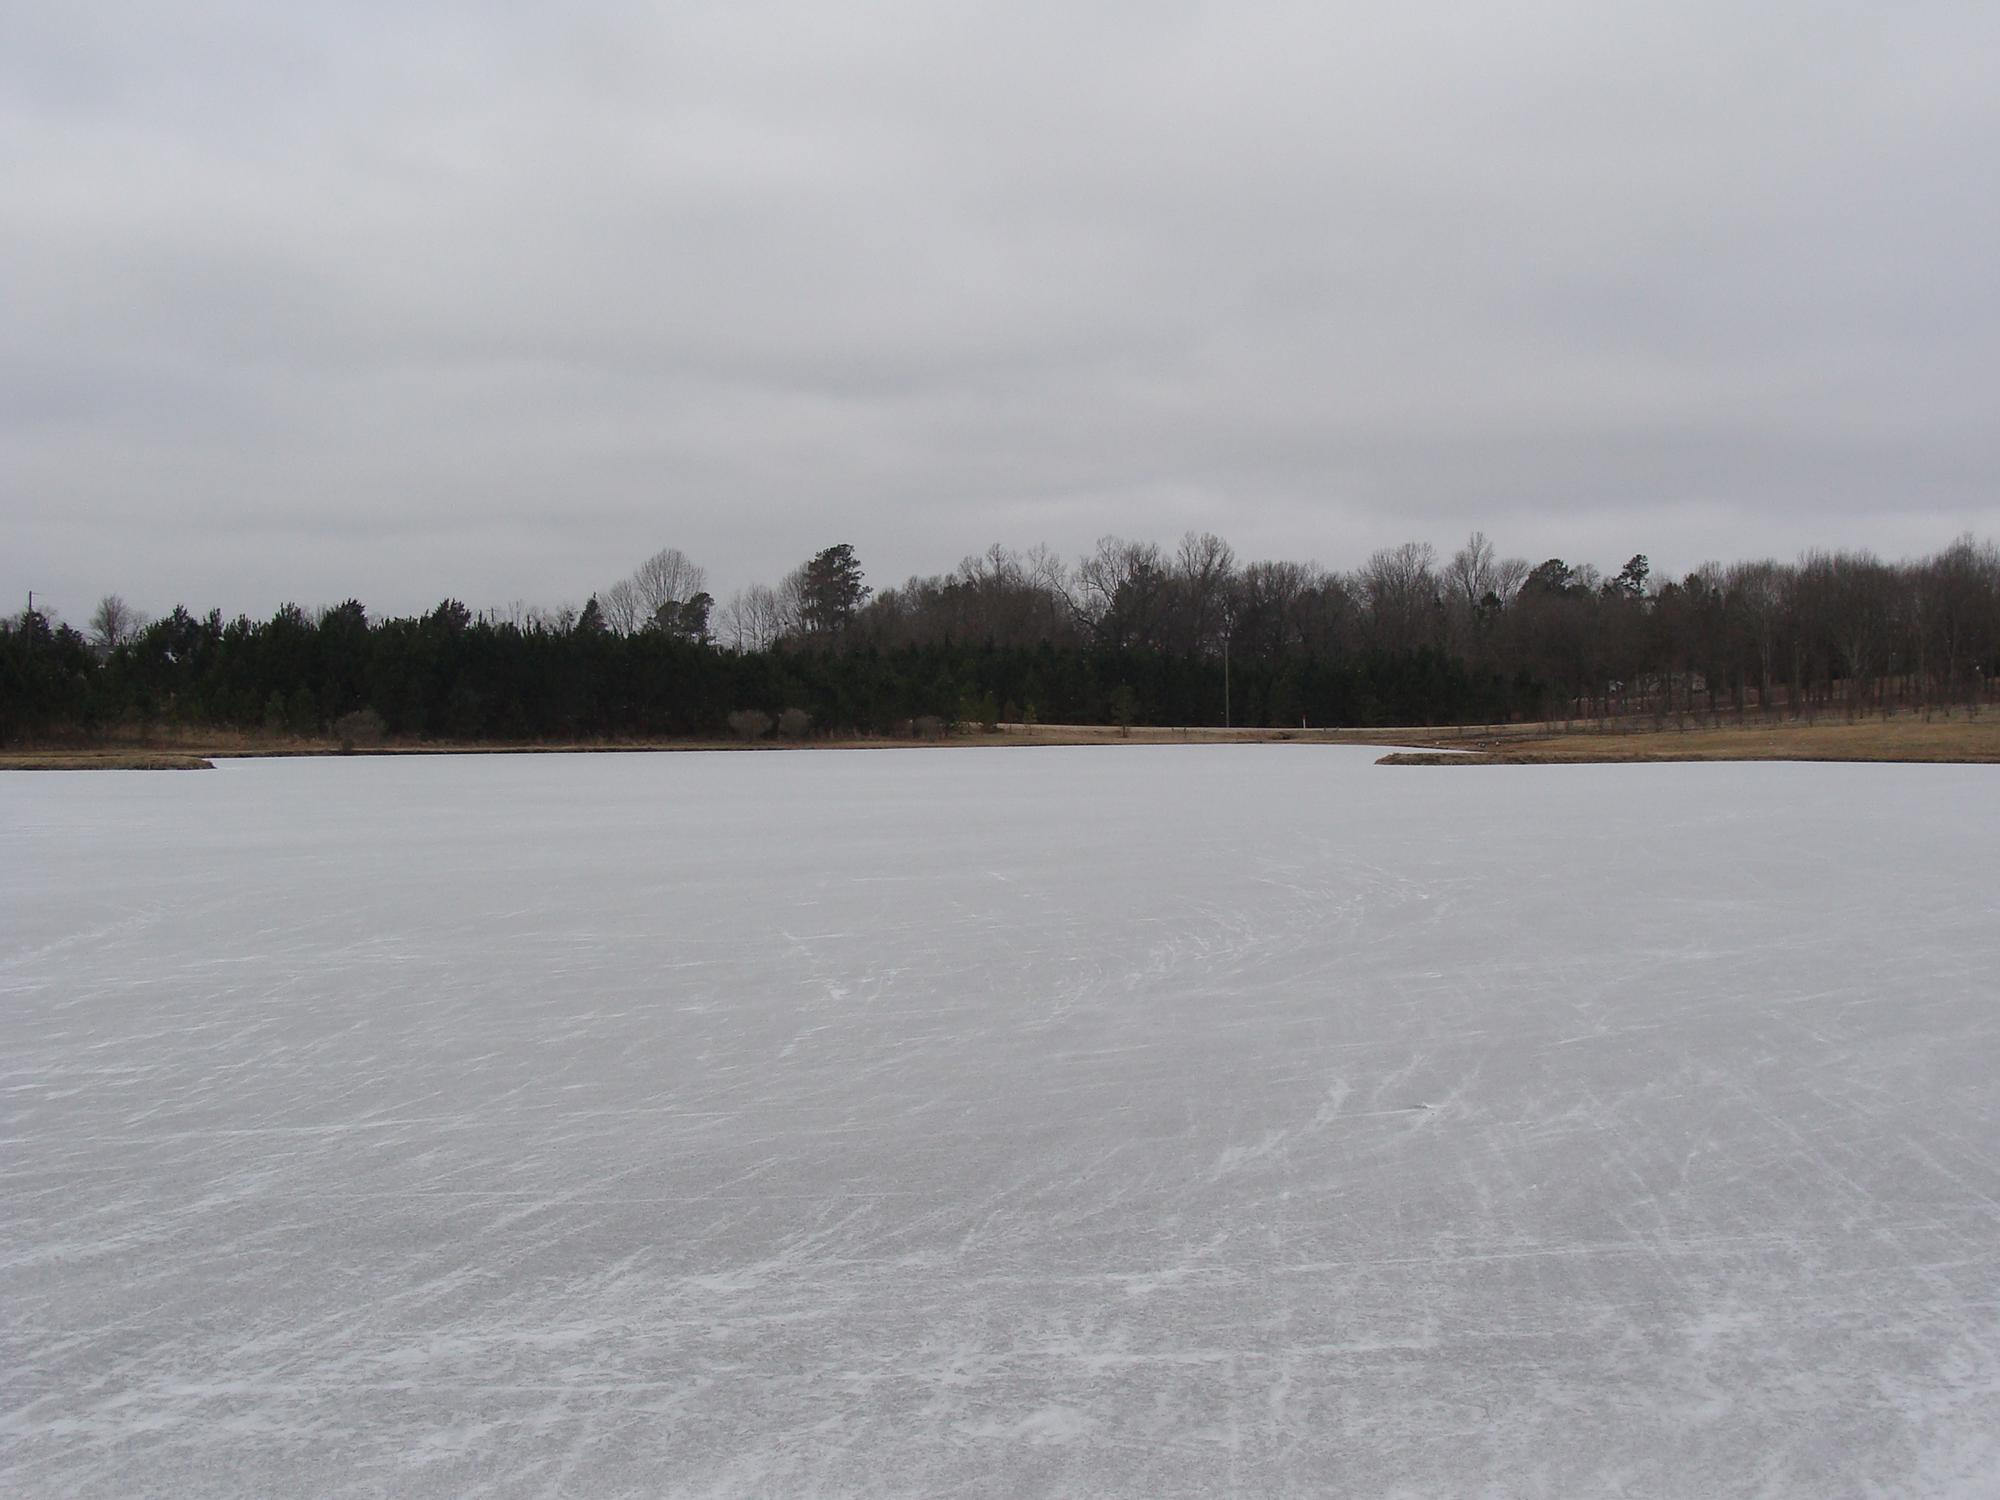 Ice covers a large pond with trees on the far side.